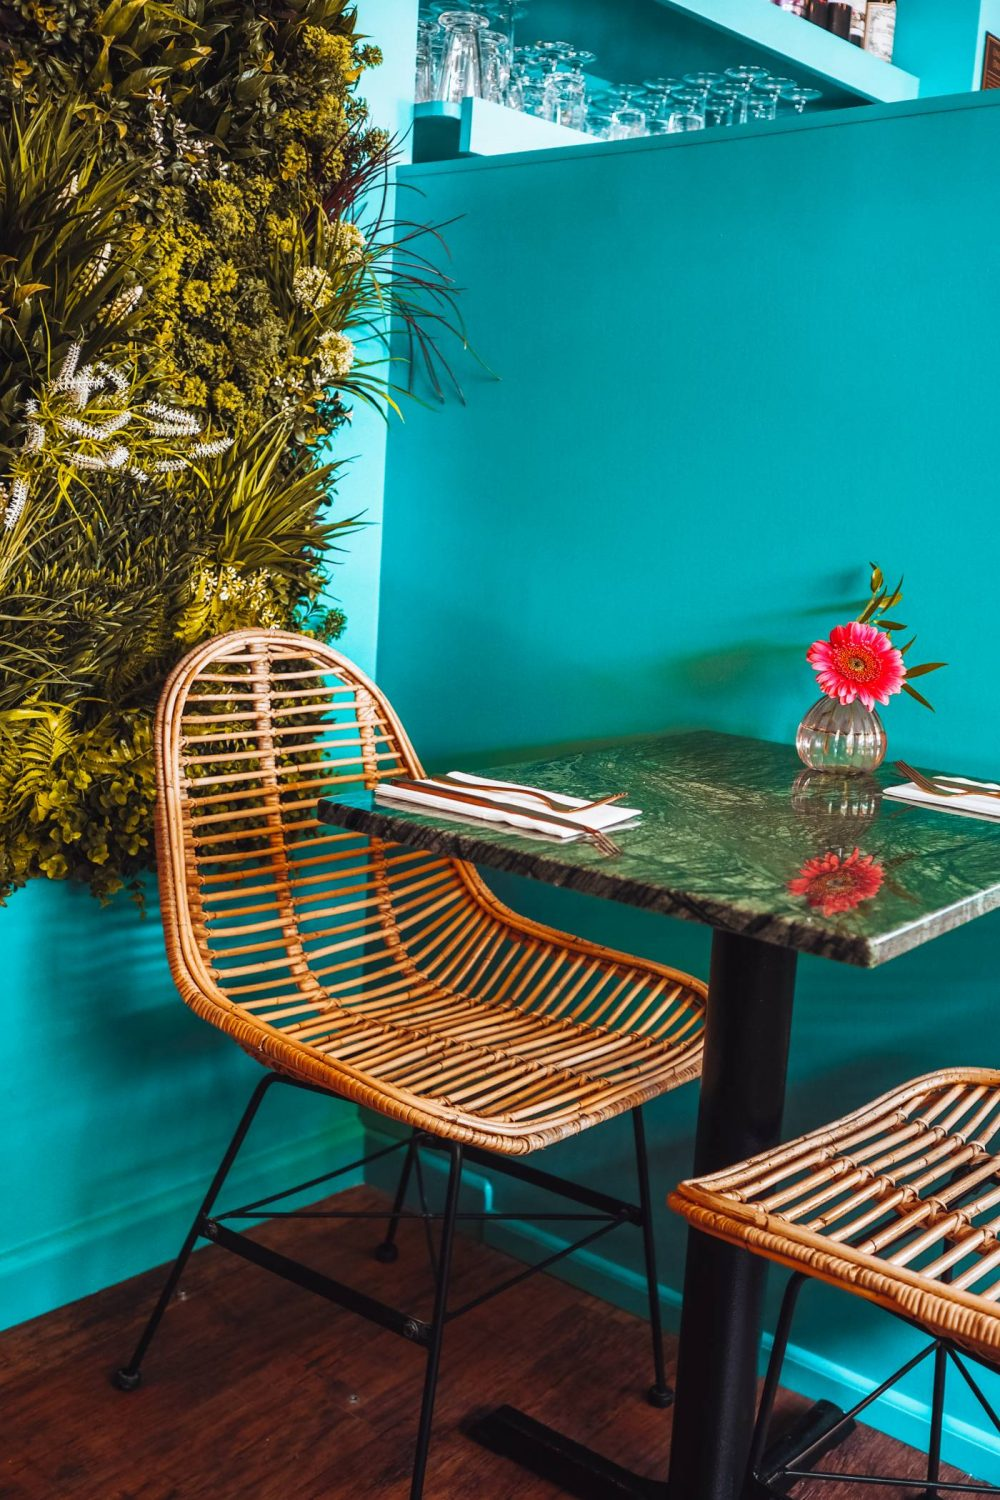 Chair against green wall in Greek affaire